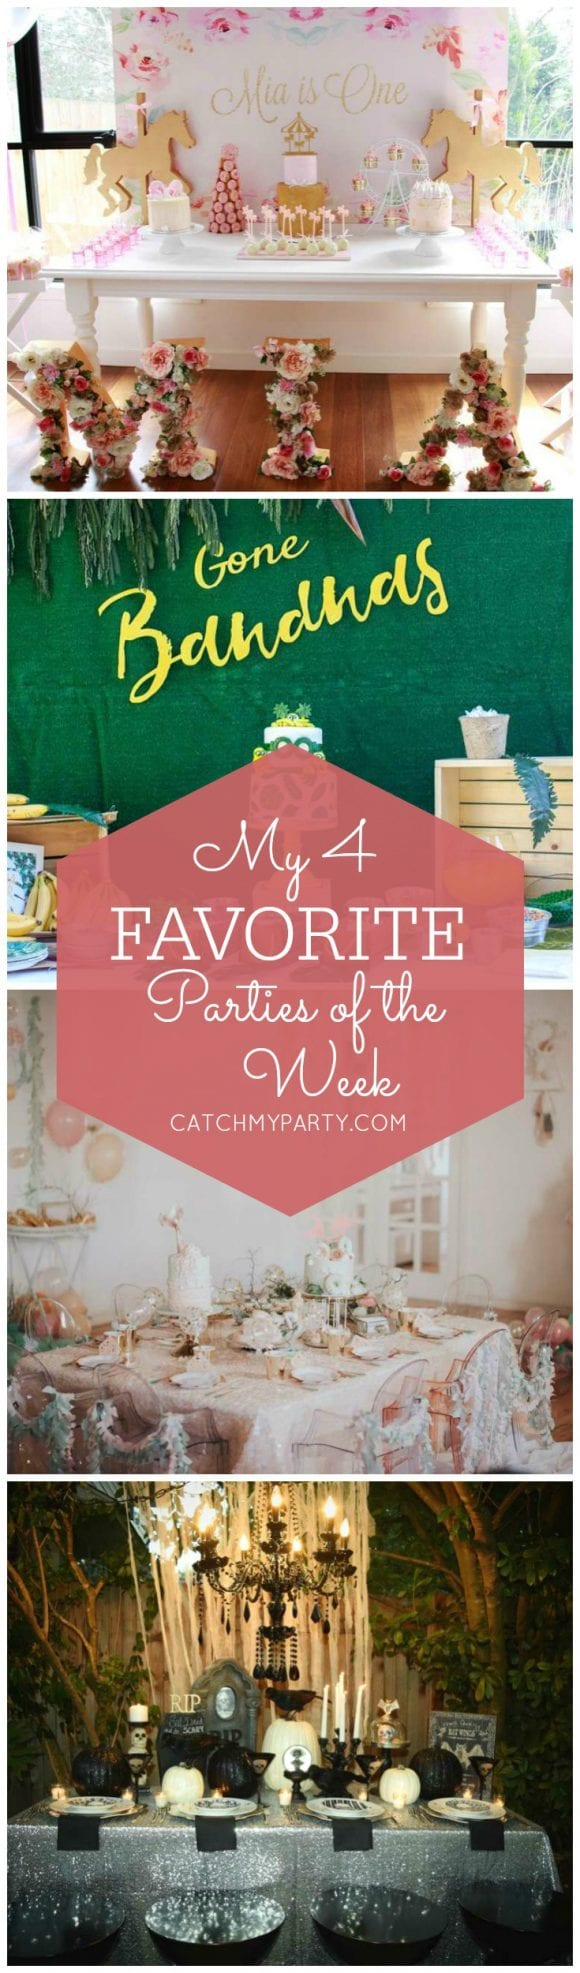 My favorite parties this week include a Carousel 1st birthday party, a Minions birthday party, a Mermaid birthday party and a Glam Halloween dinner party! | Catchmyparty.com